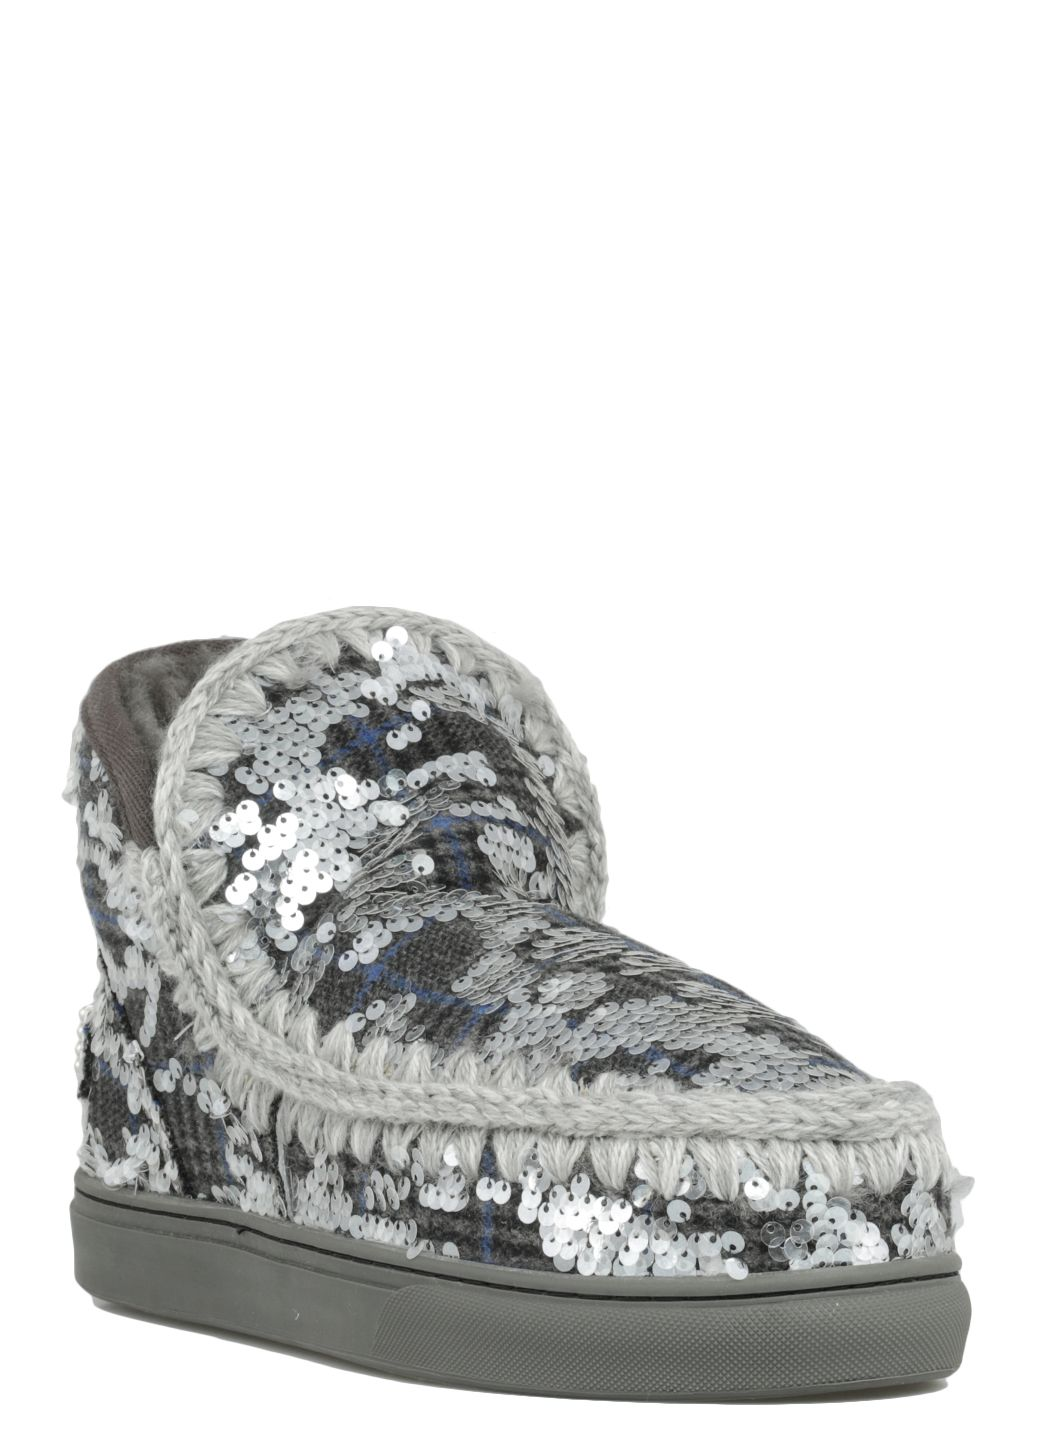 Eskimo Sneaker wool plaid & sequins